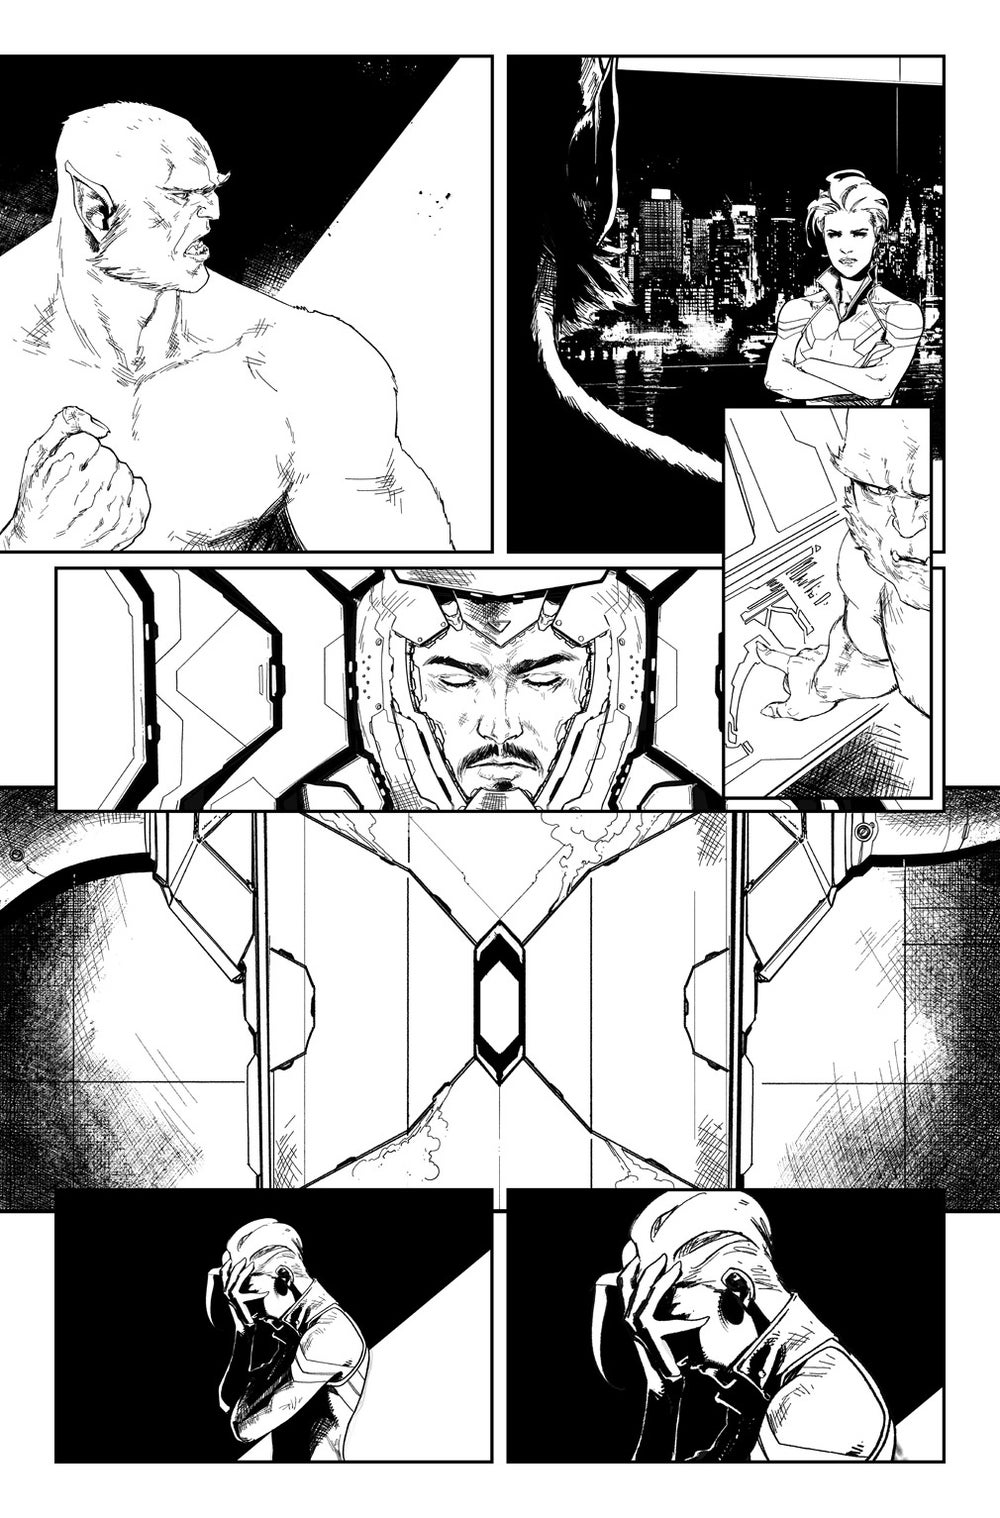 Image of CIVIL WAR II #8, p.35 ARTIST'S PROOF